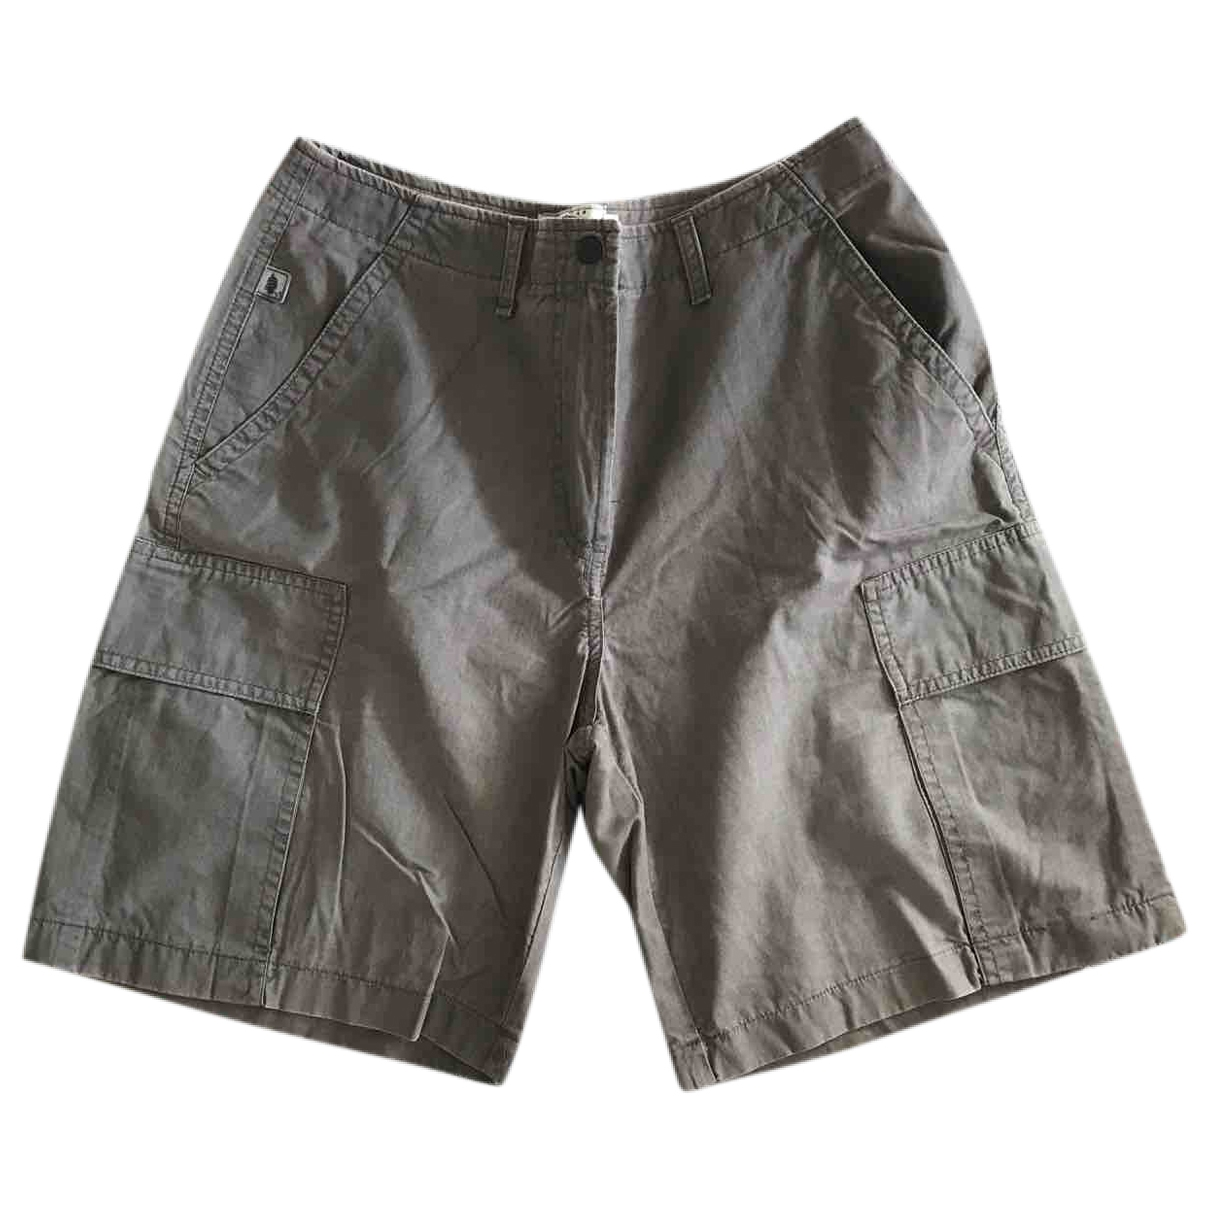 Marina Yachting \N Shorts in  Grau Baumwolle